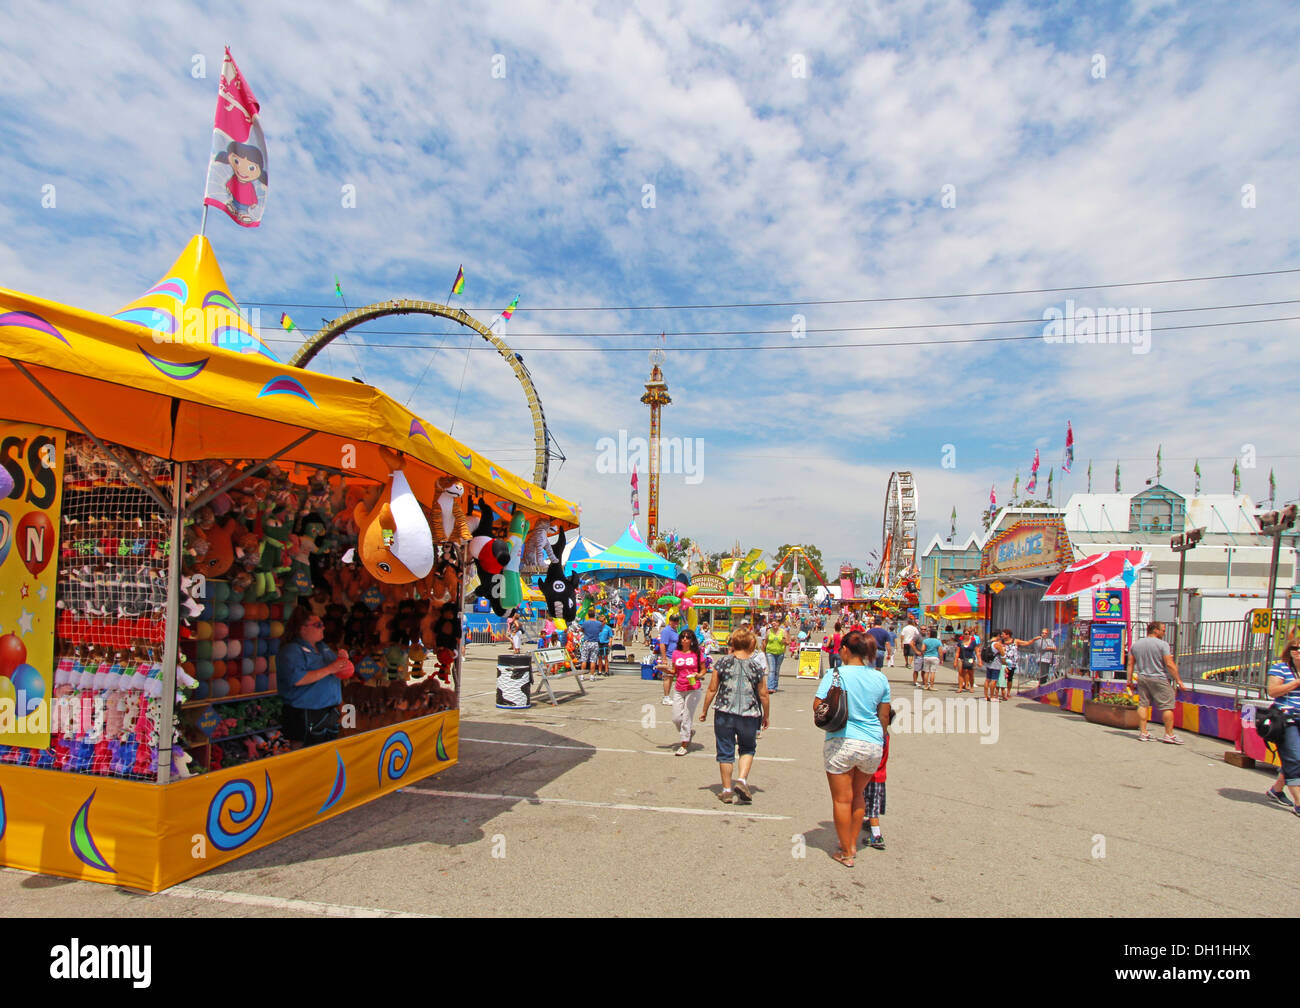 Vendors, tourists and rides on the Midway at the Indiana